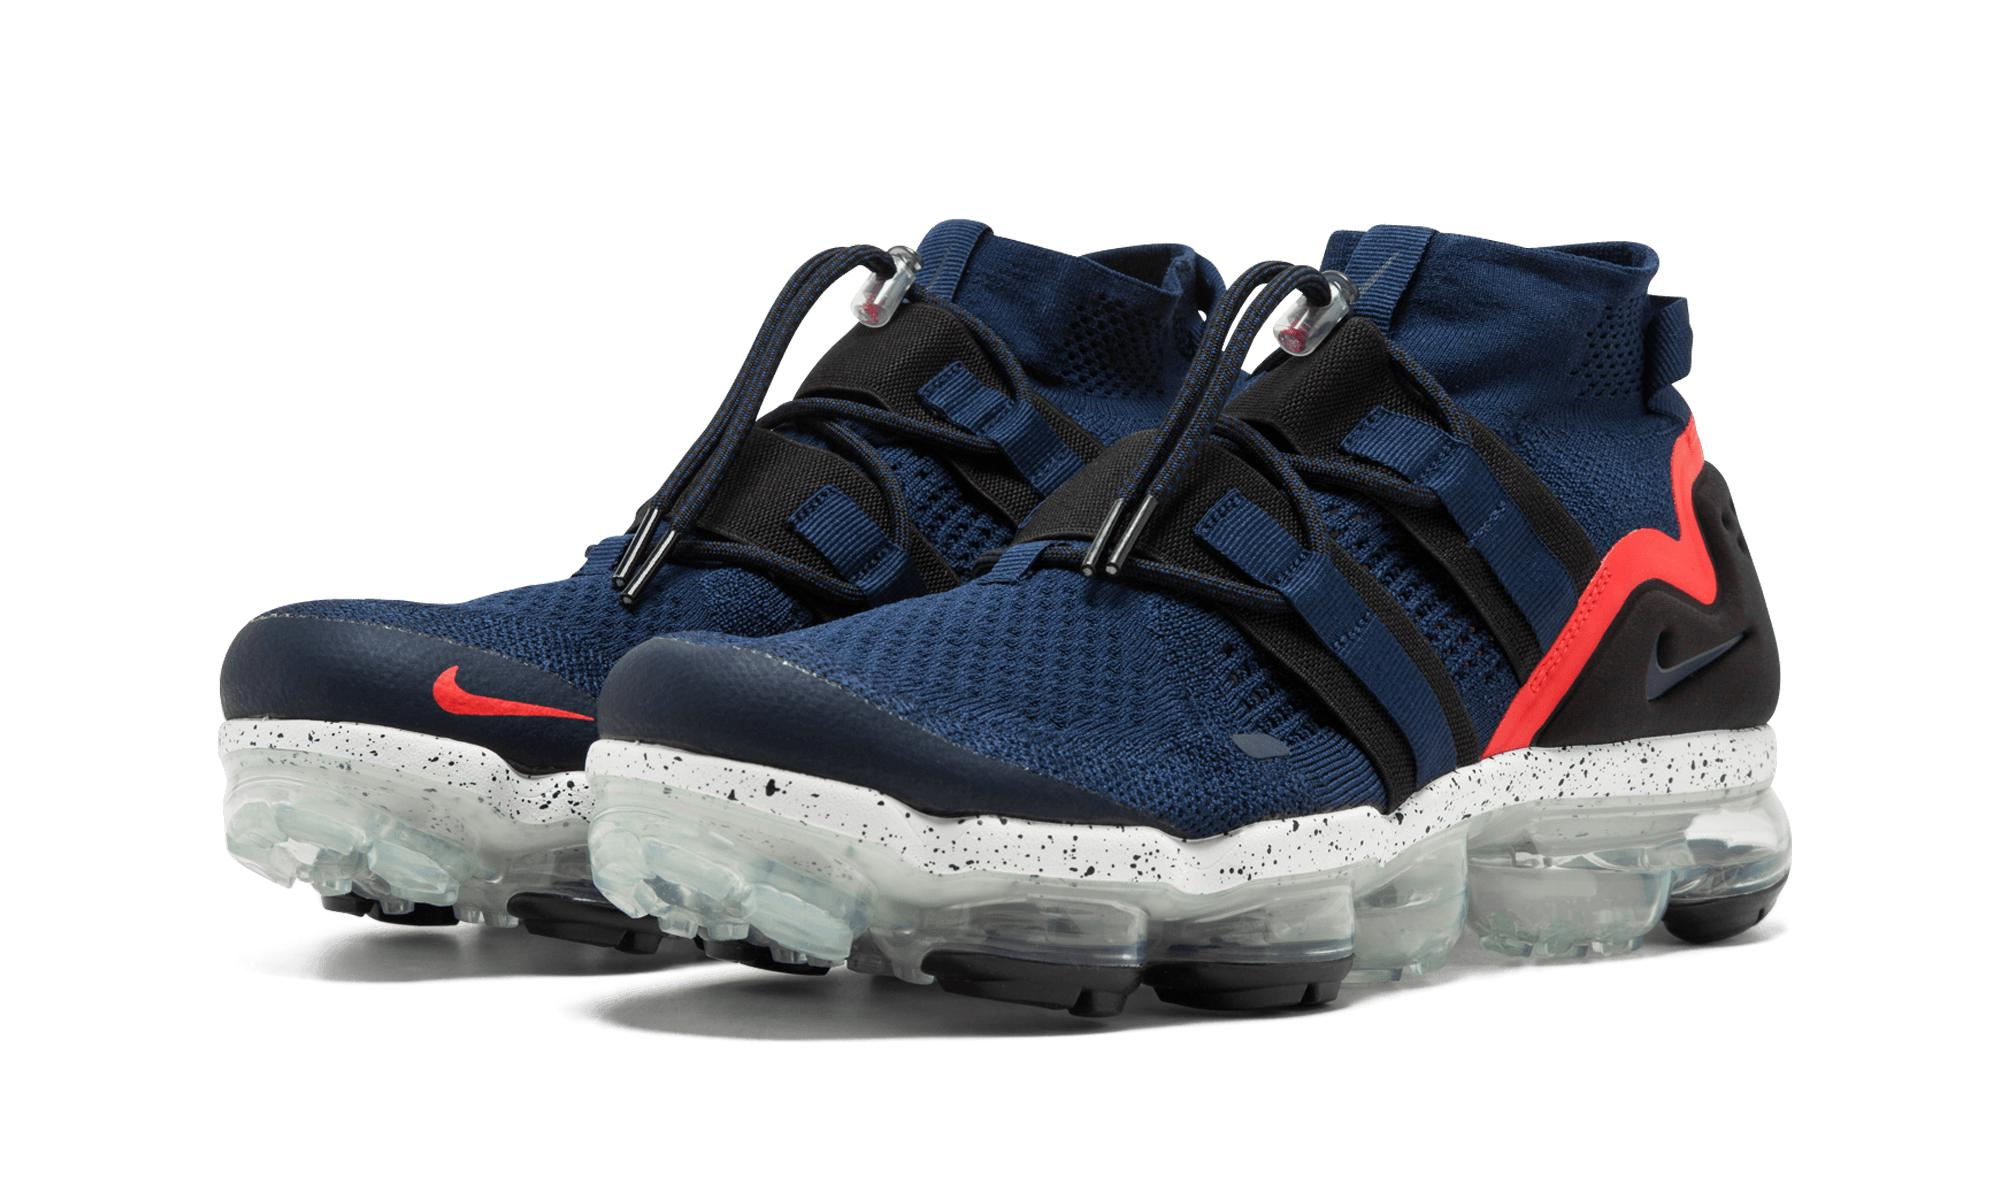 17768540def6 Nike Air Vapormax Fk Utility in Blue for Men - Save 17% - Lyst